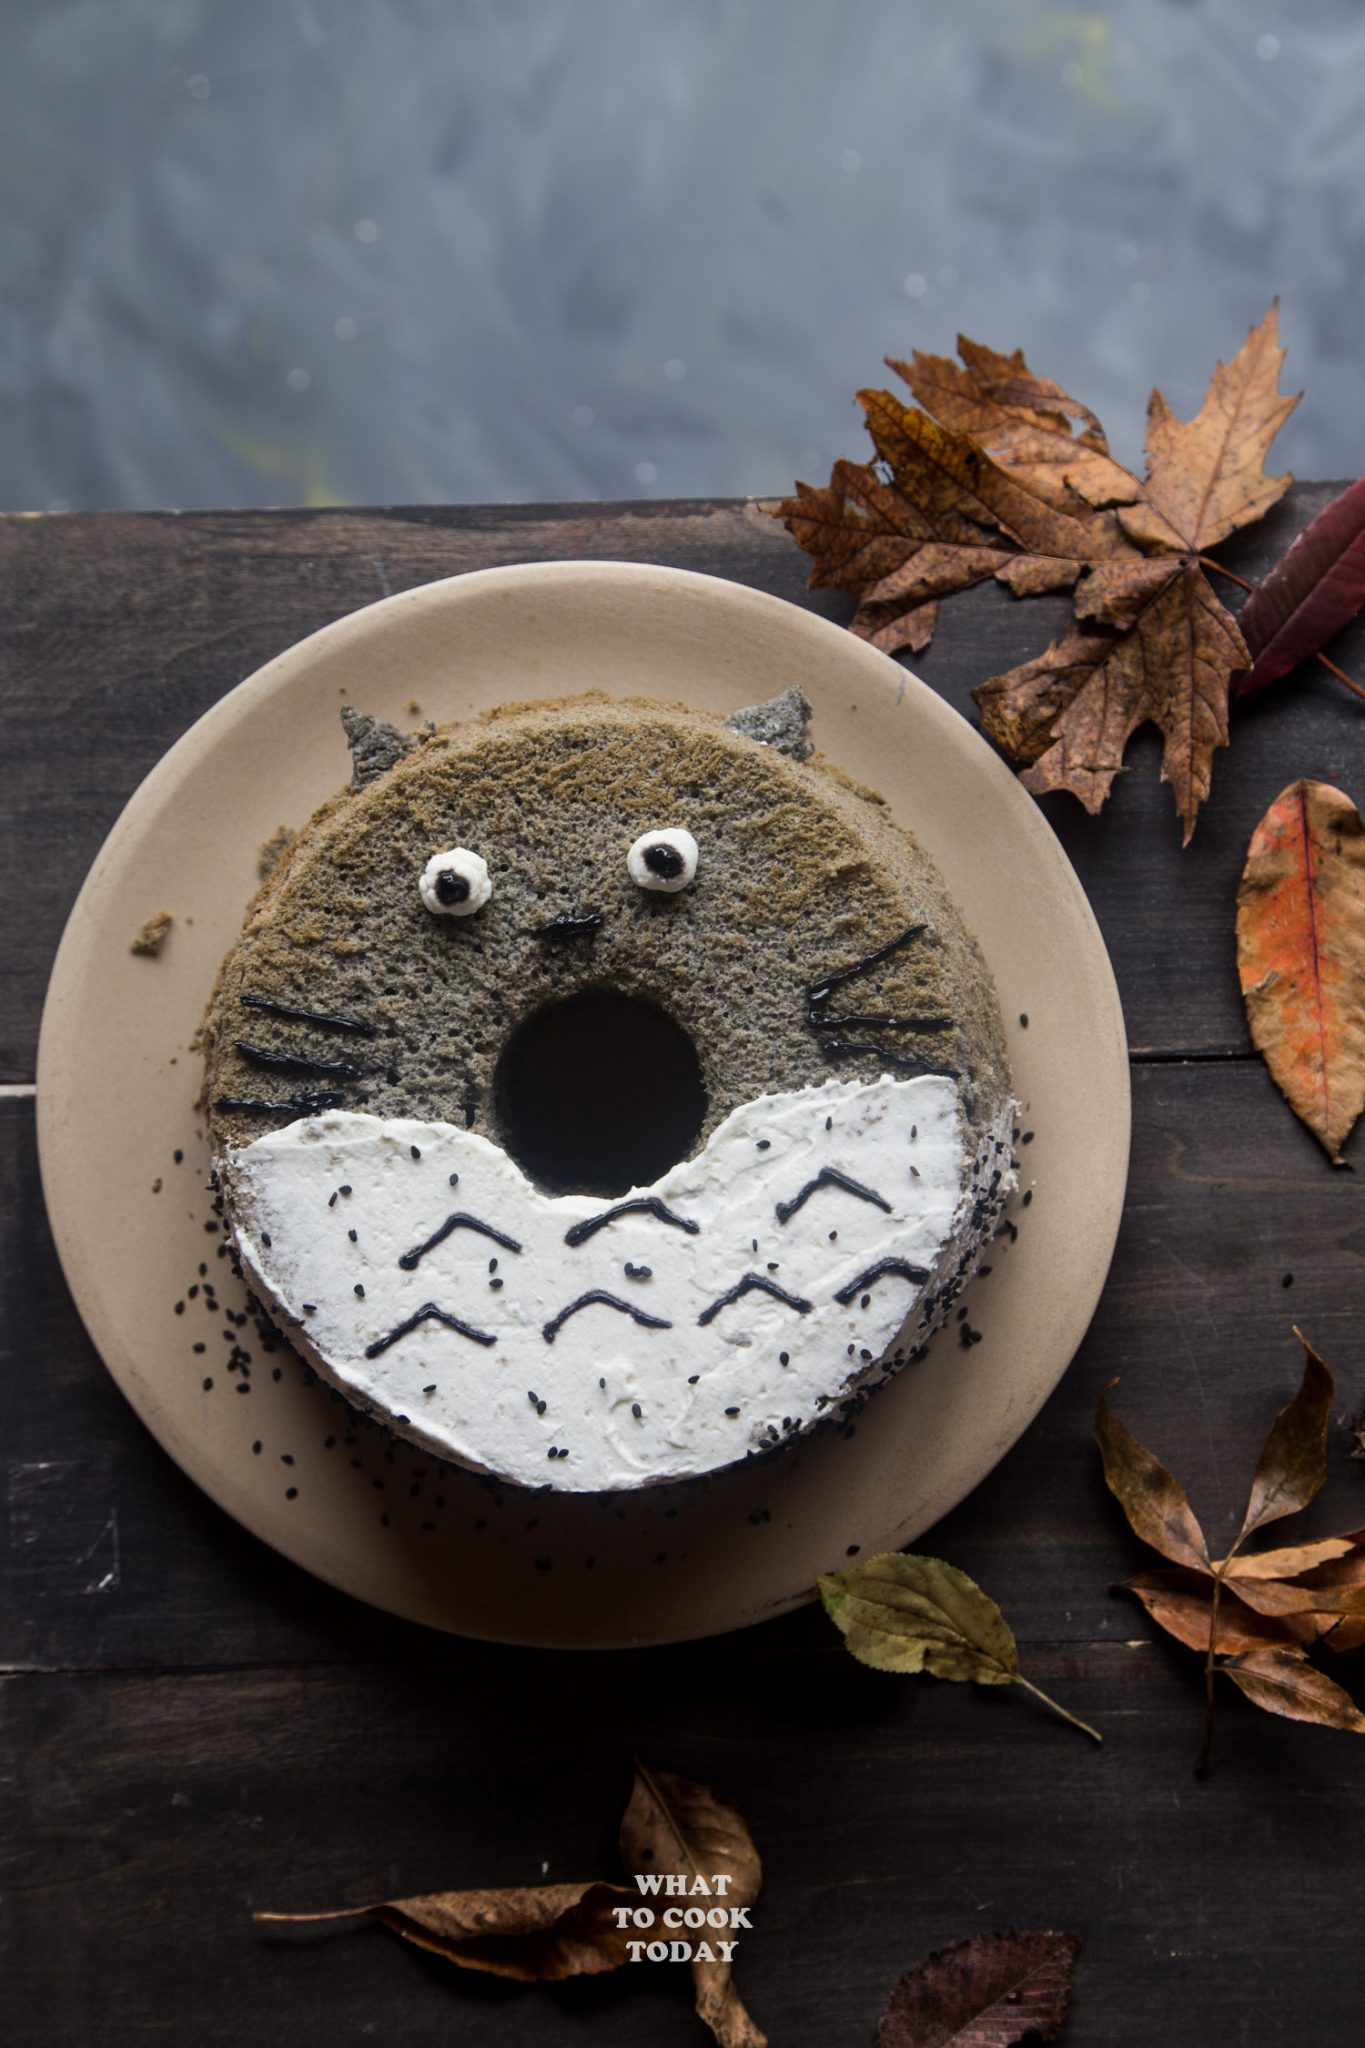 Totoro Black Sesame Chiffon Cake. Perfect for a birthday or as cute Halloween treat. Nutty roasted black sesame seeds are infused all over this light and fluffy chiffon cake that resembles the adorable Japanese anime Totoro